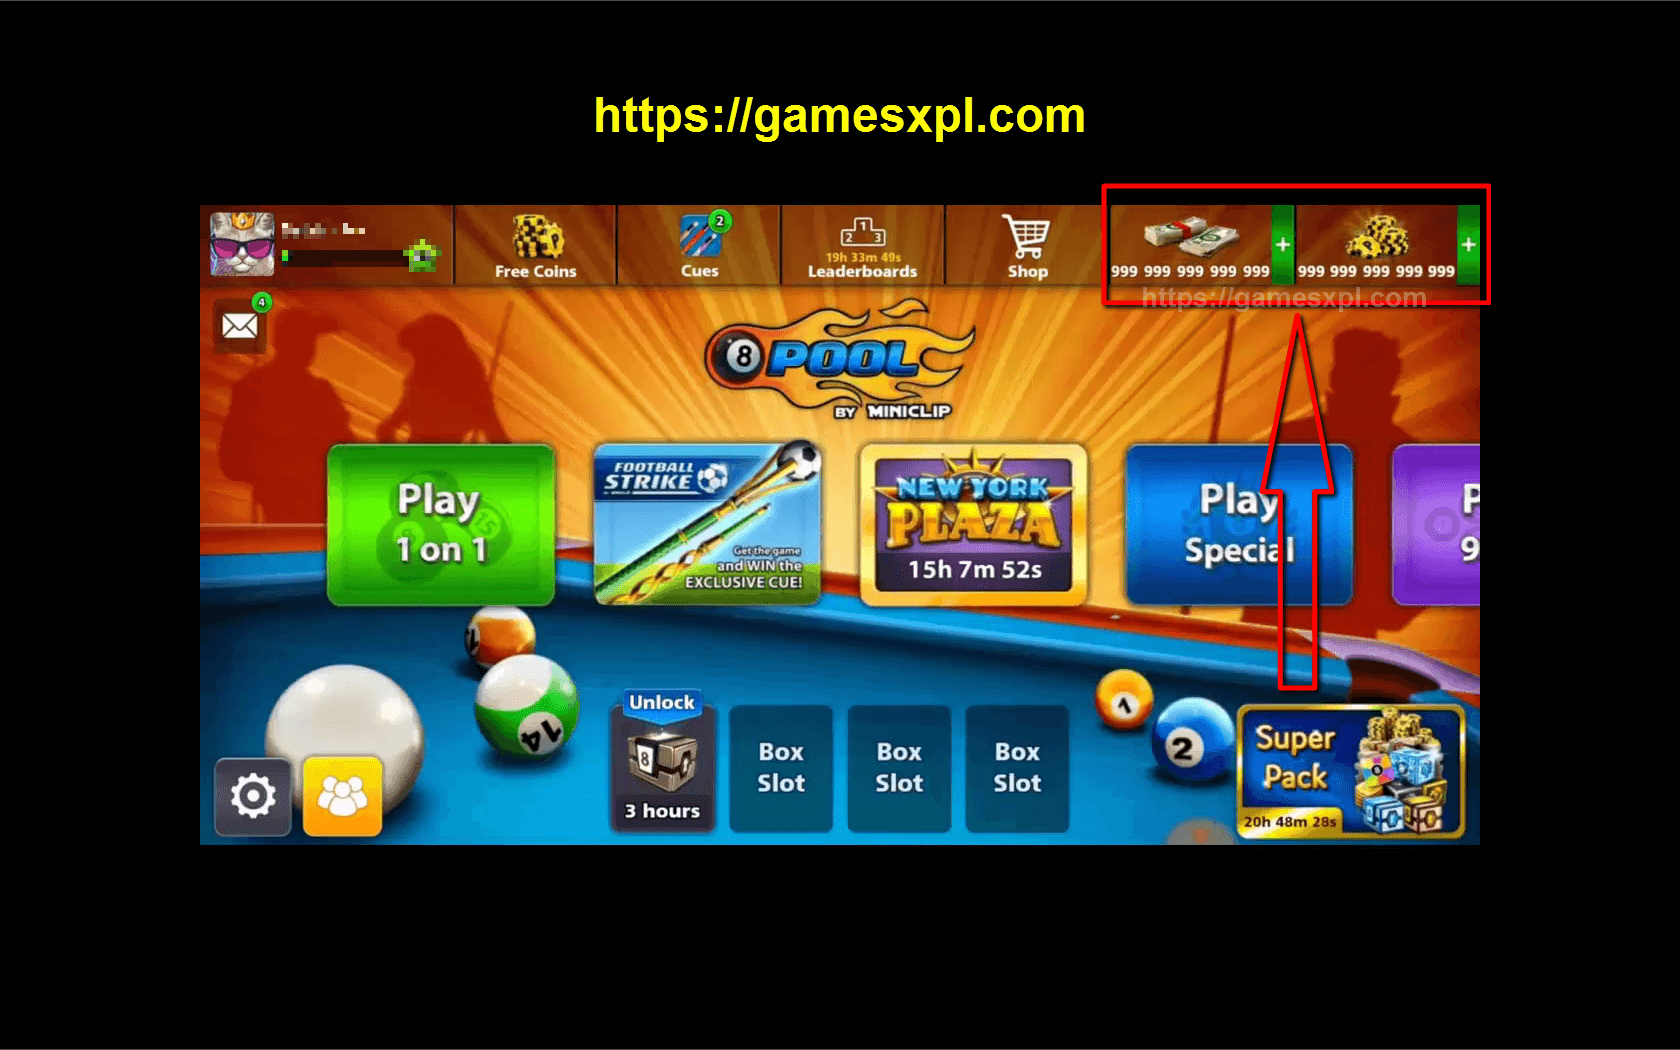 8 Ball Pool Hack Mod Apk-How to Get Unlimited Cash and Coins-iOS-Android-Windows